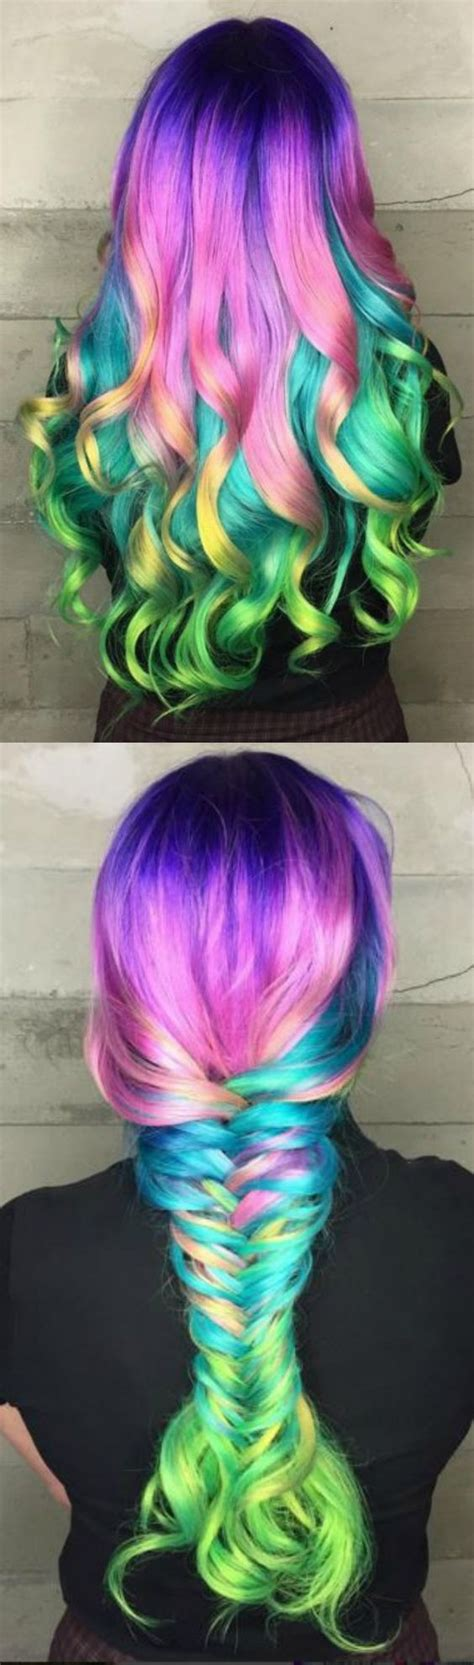 mermaid colored hair mermaid colored hair pictures photos and images for